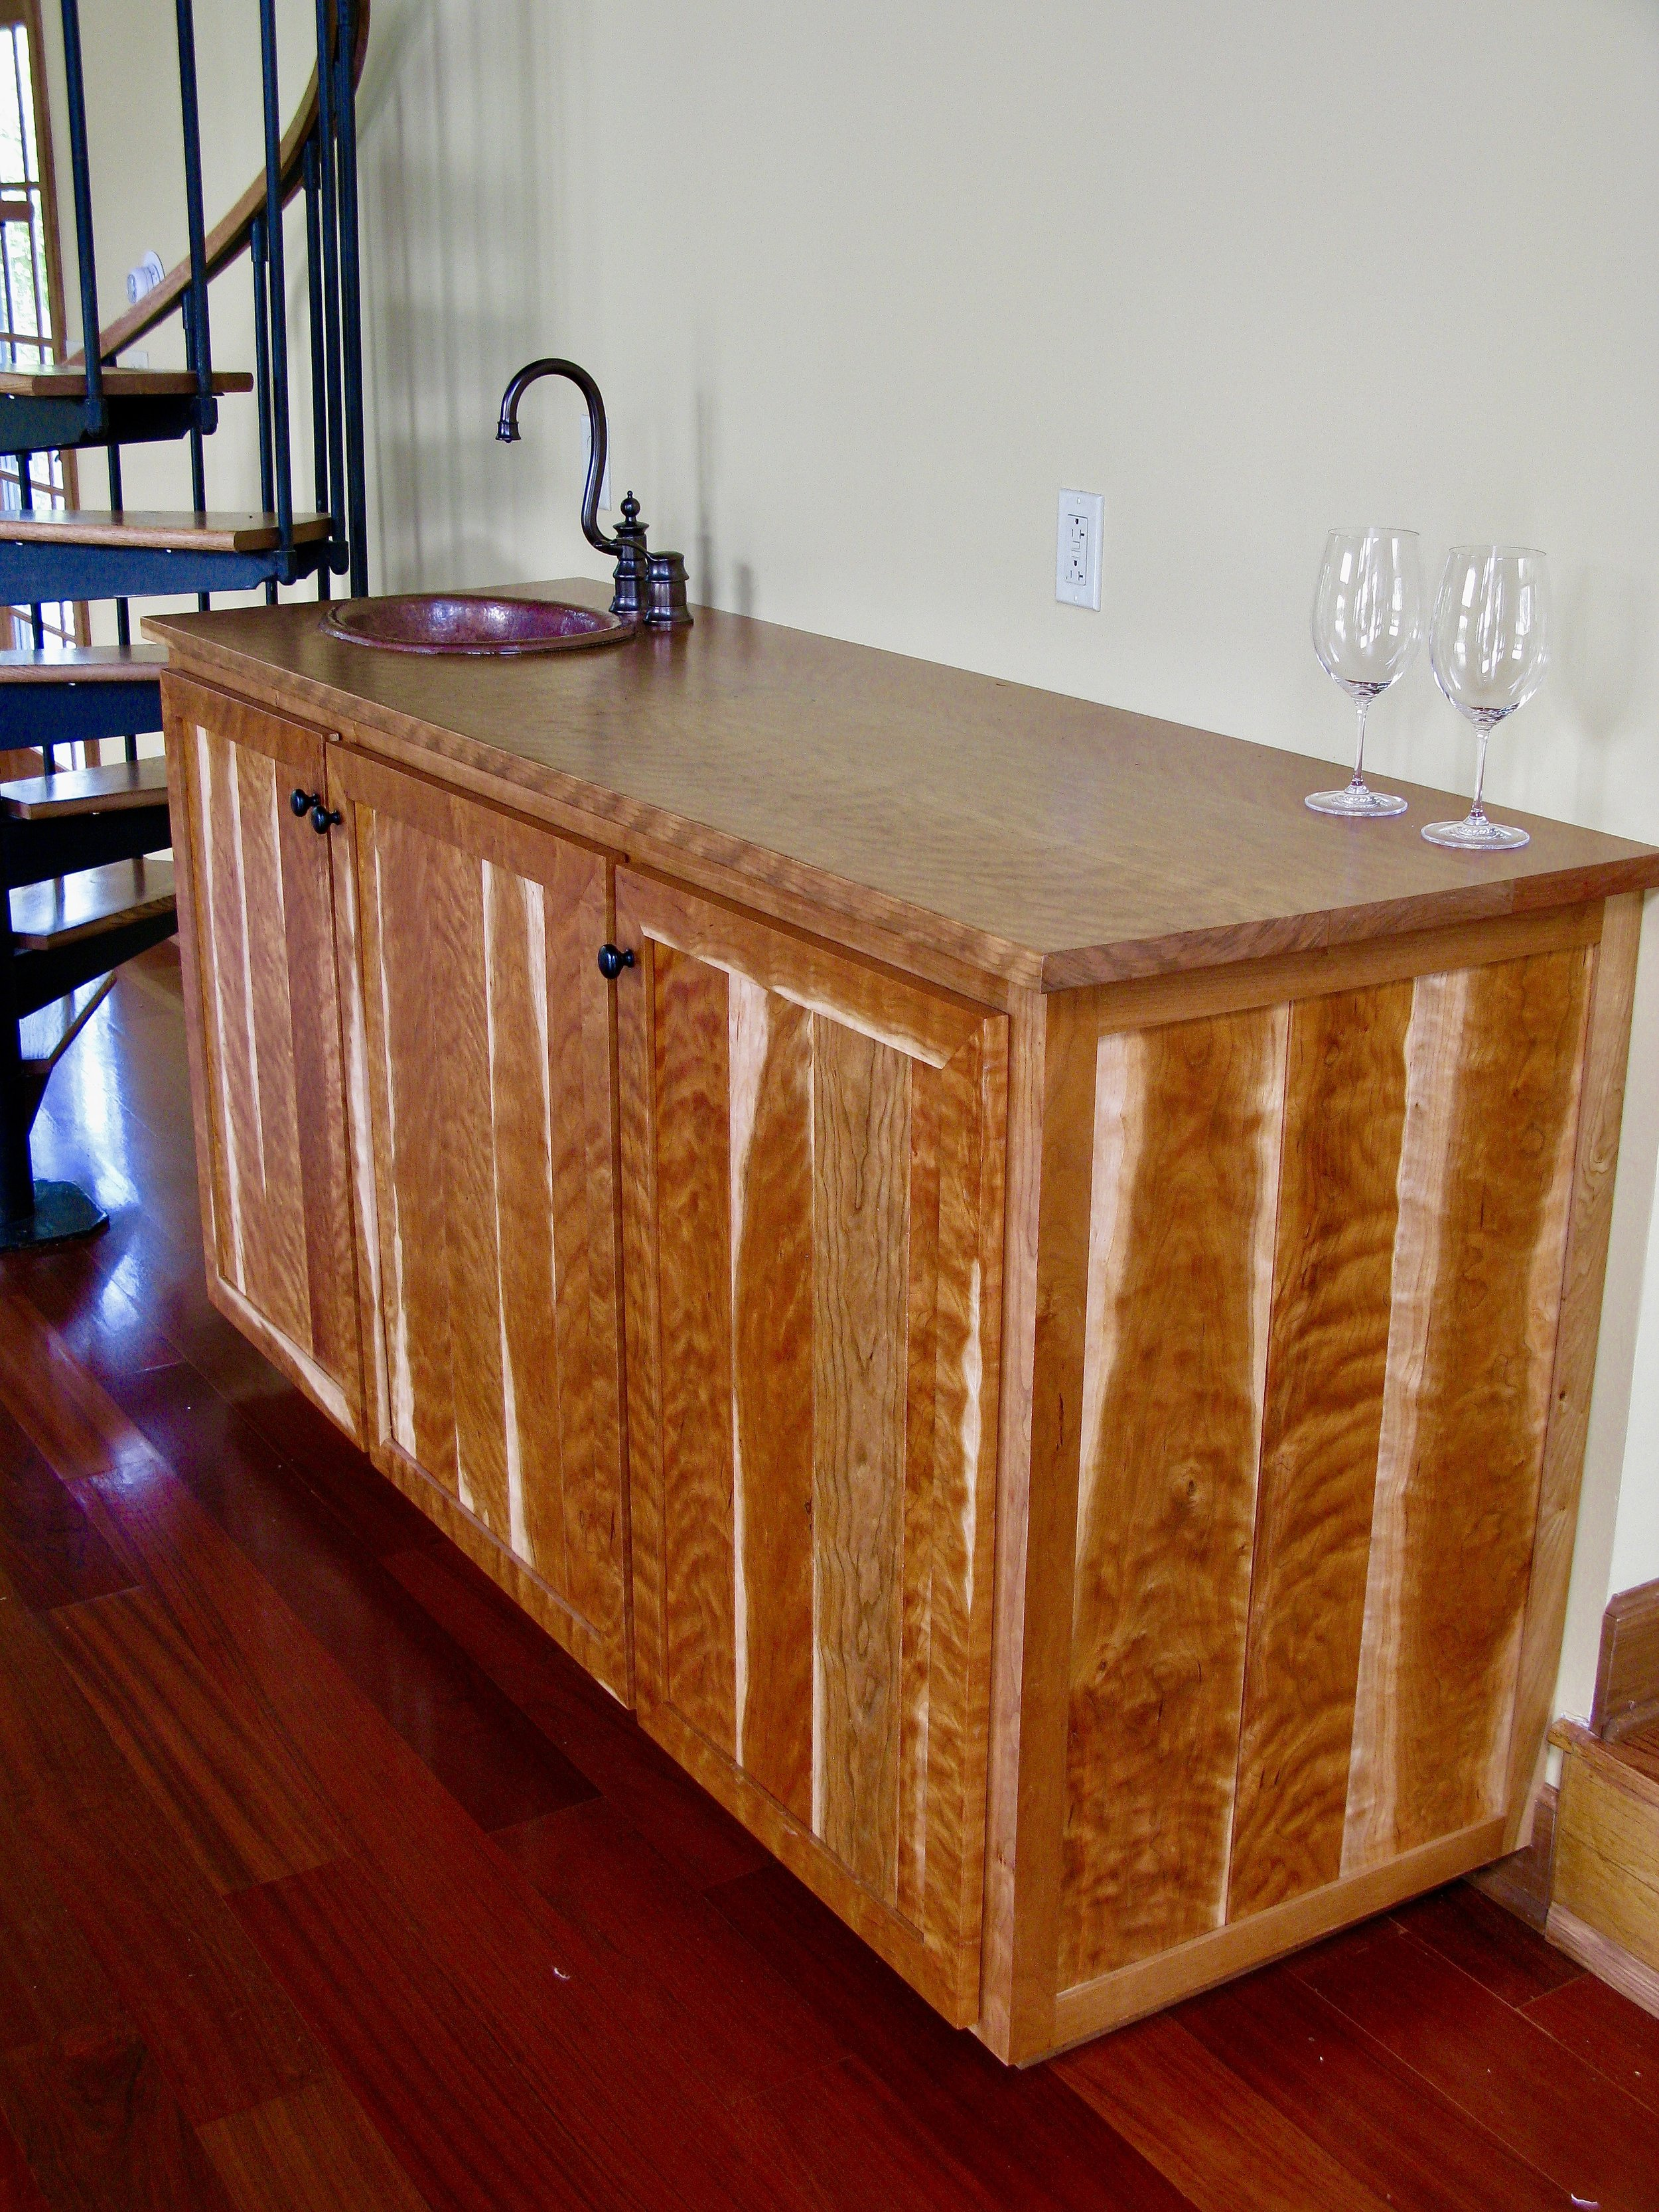 Curly cherry wet bar with copper sink